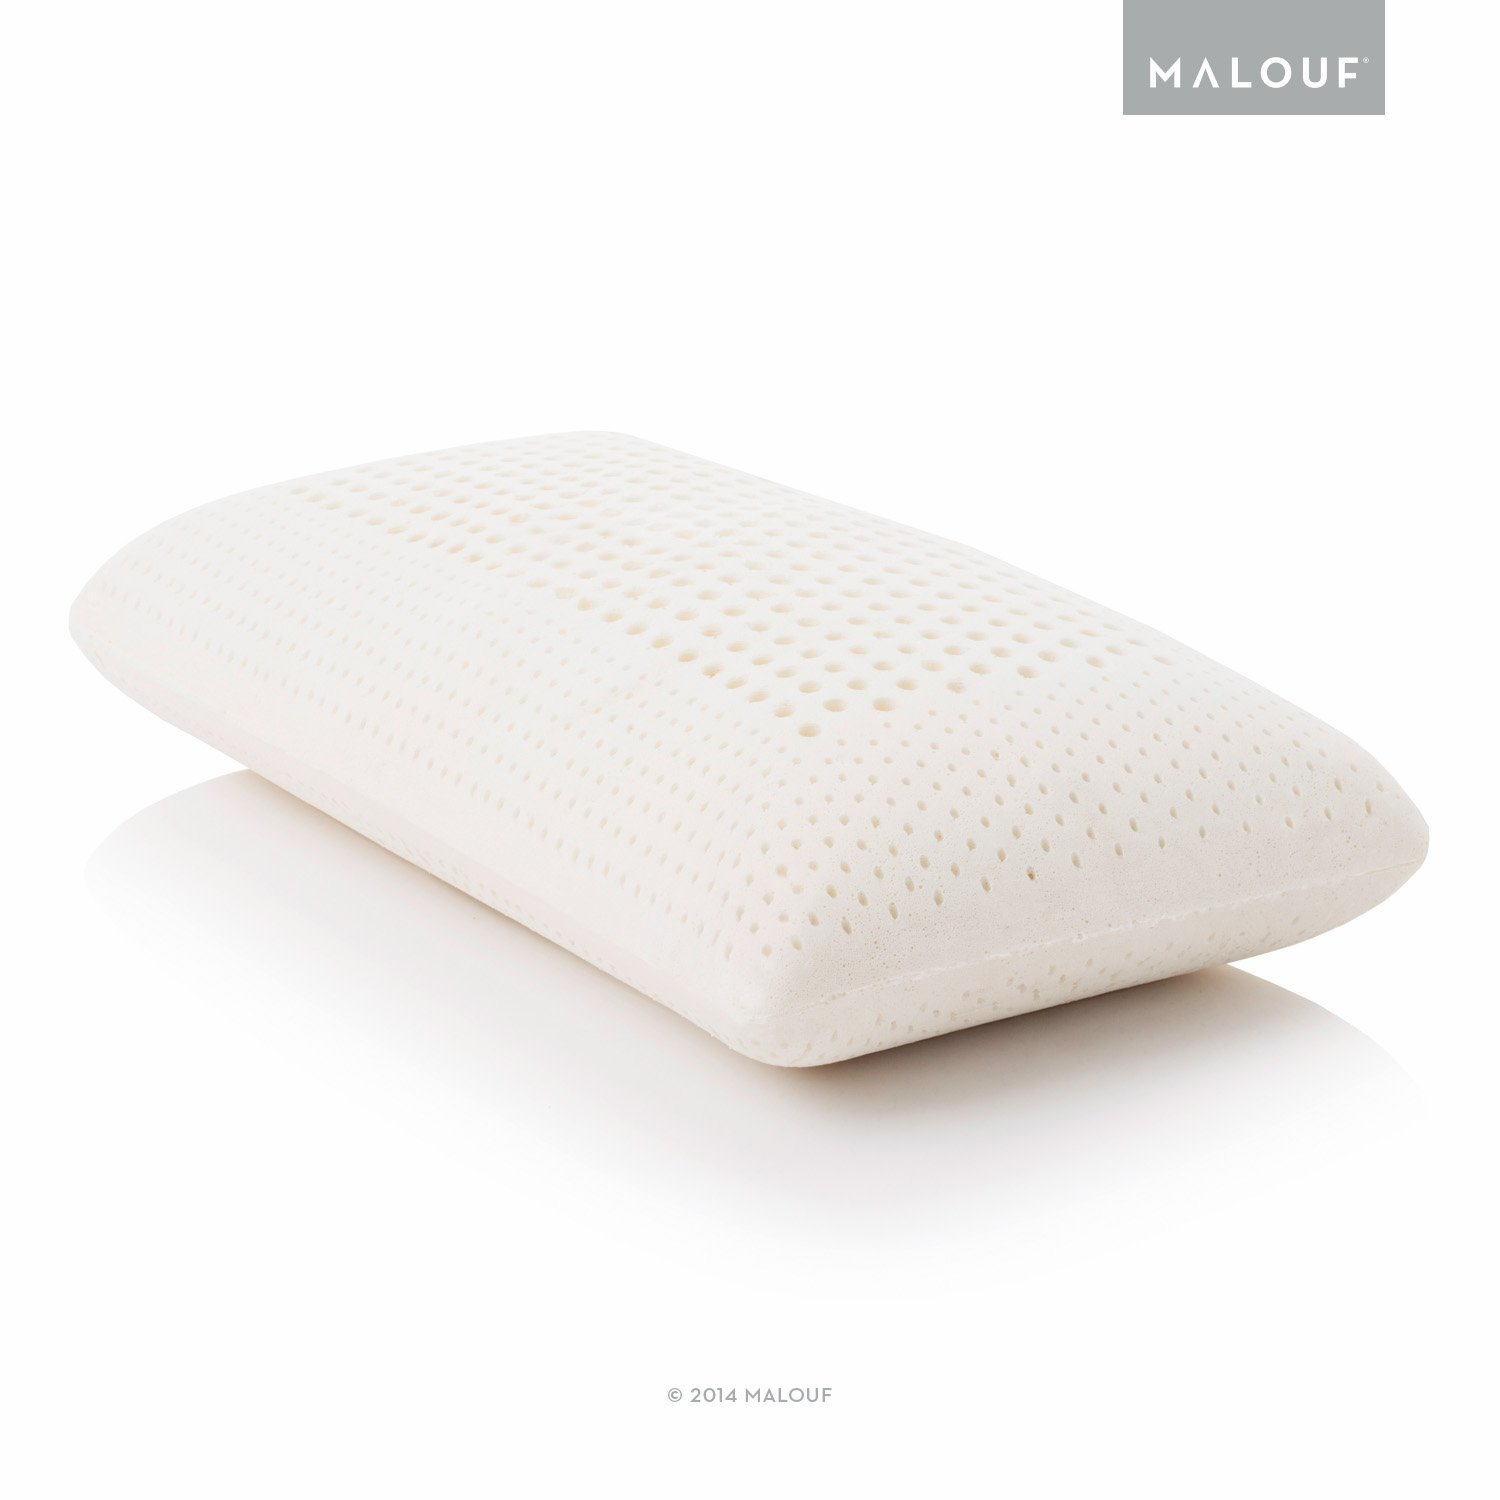 Z 100% Natural Talalay Latex Zoned Pillow